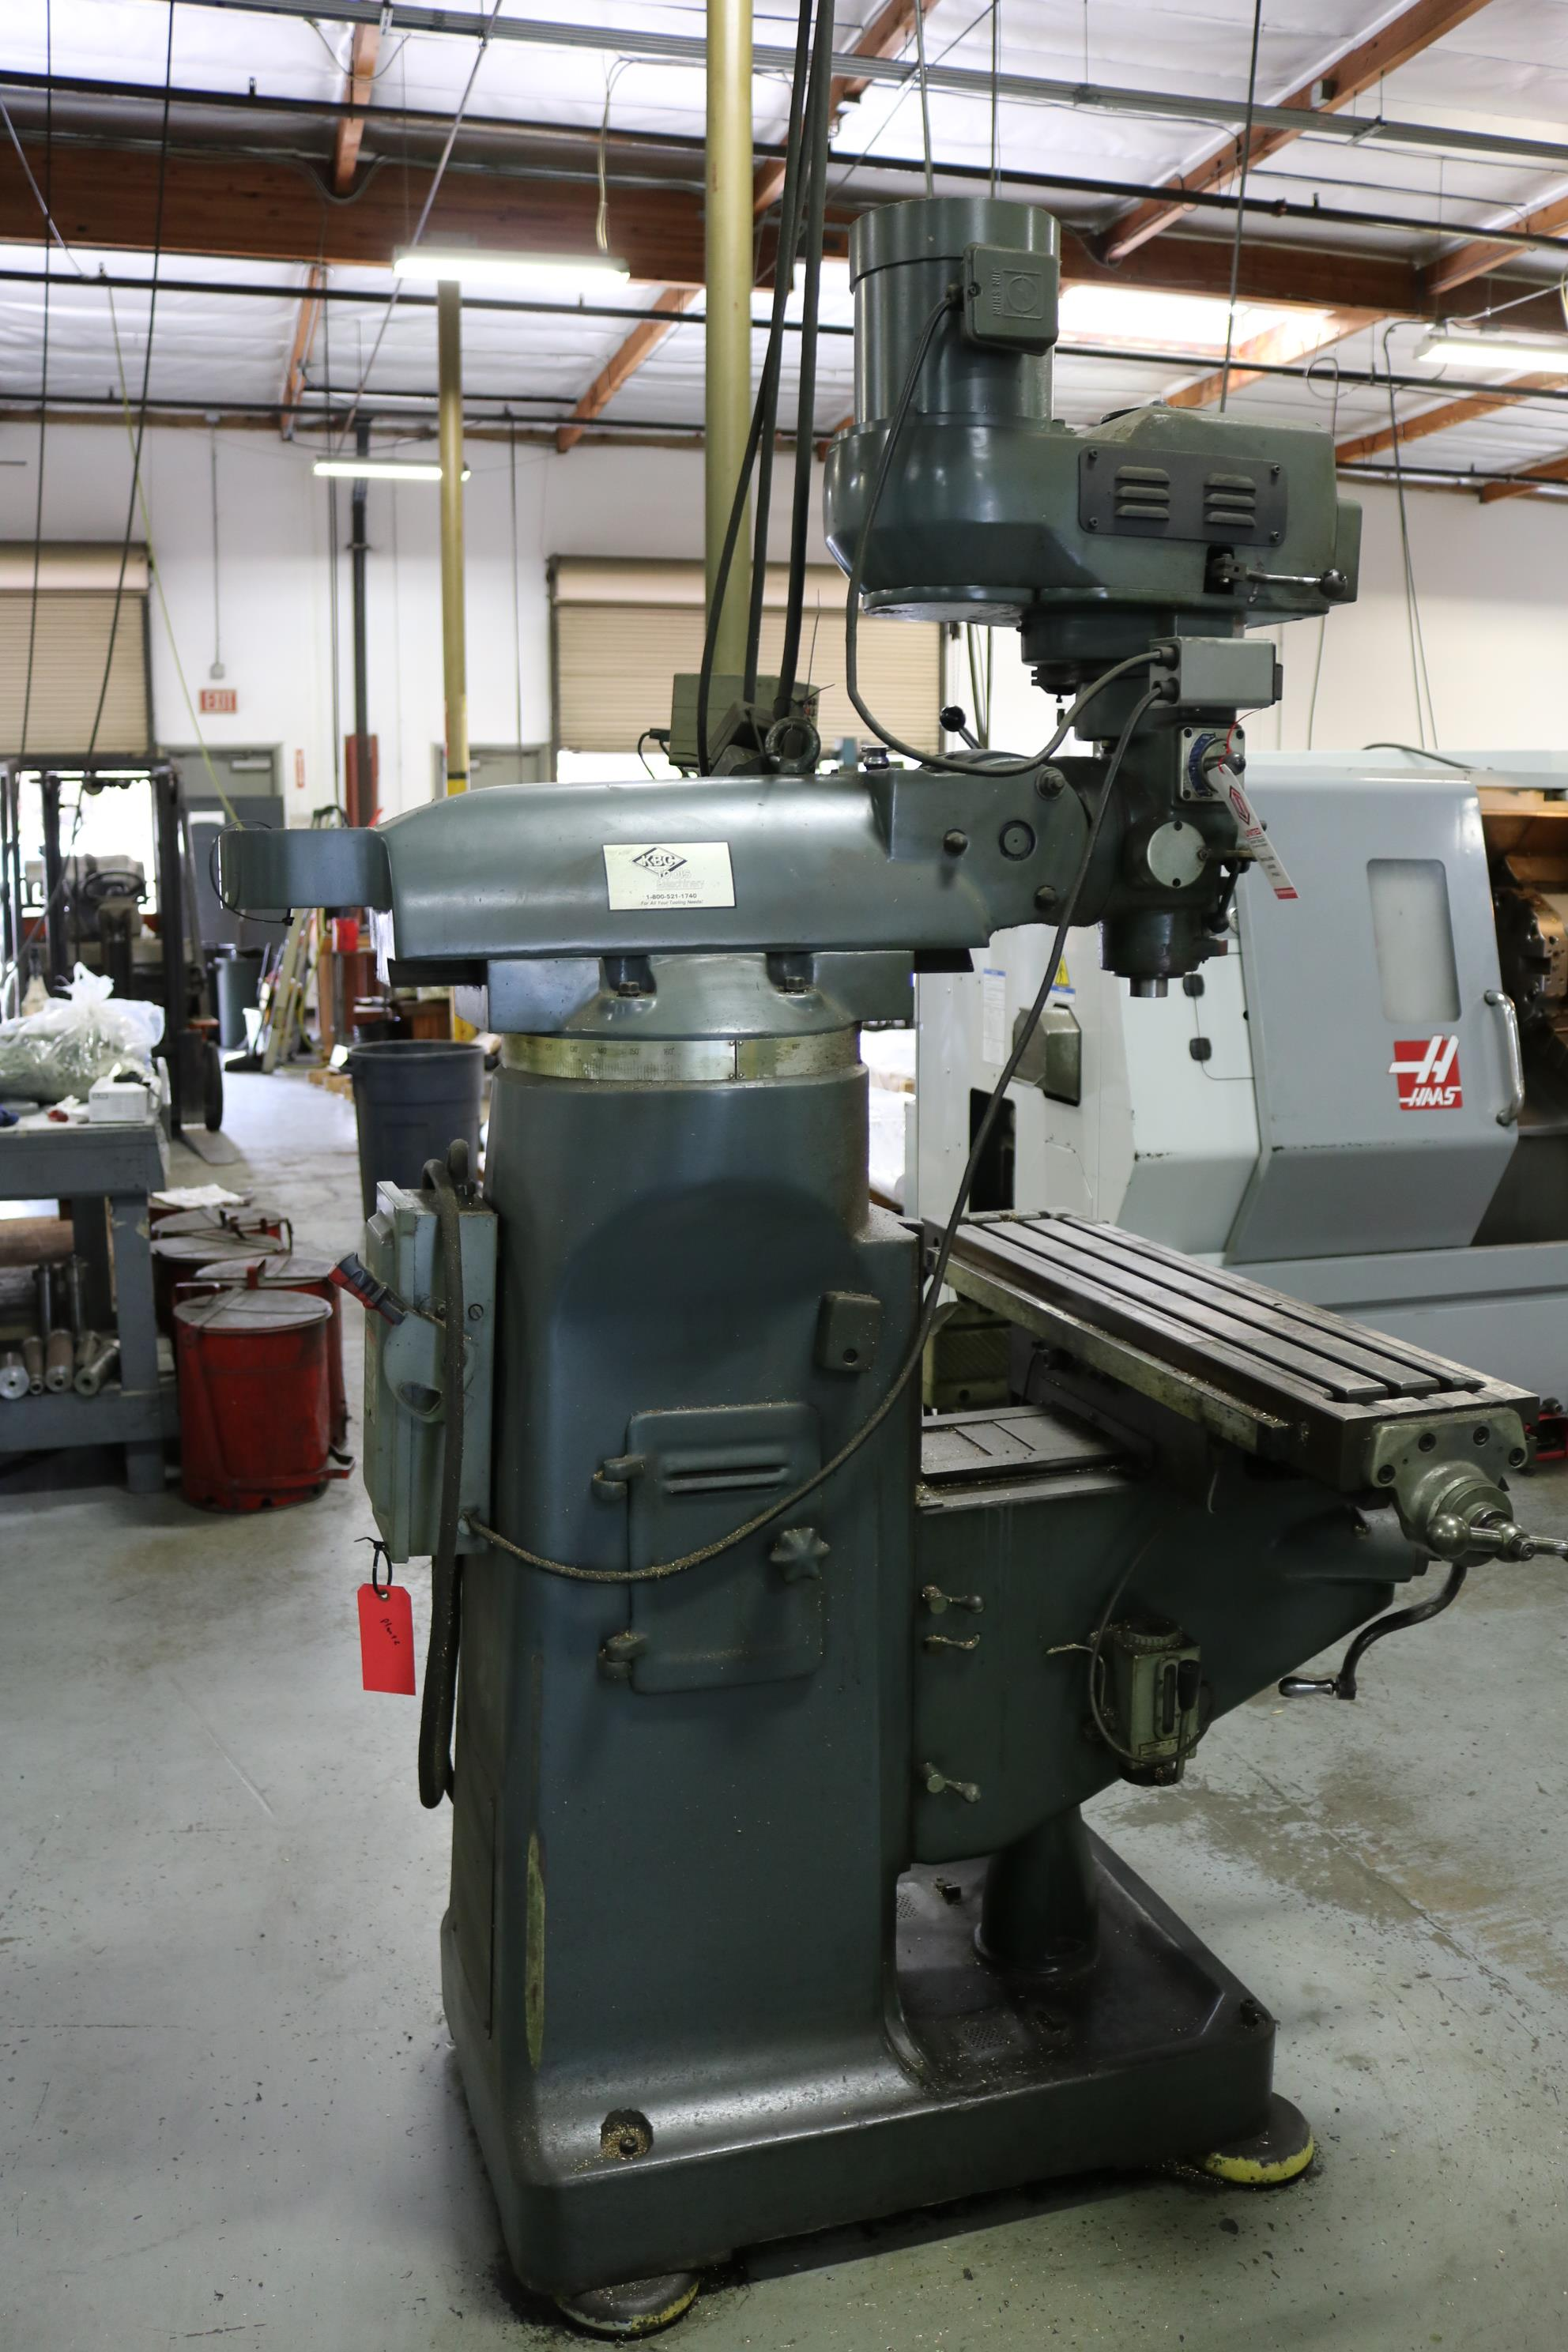 "Lot 2 - KBC VERTICAL MILL, 9"" X 42"" TABLE, POWER FEED, VARIABLE SPEED, 60-4200 RPM, MITUTOYO DRO"